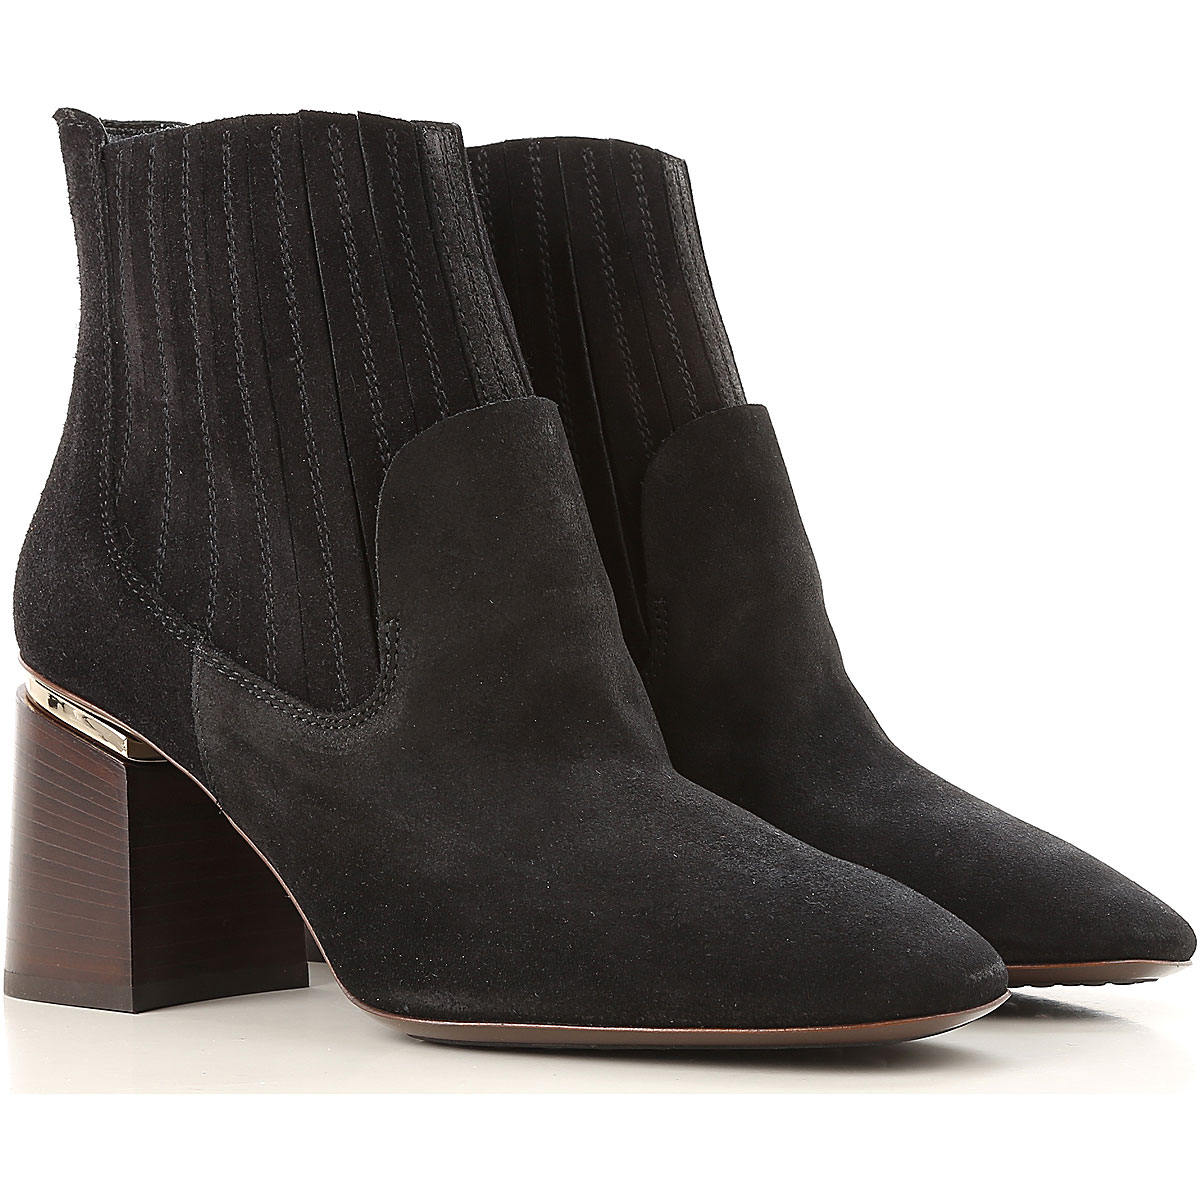 Tods Boots for Women, Booties On Sale, Black, Suede leather, 2017, 6 6.5 7 8 8.5 9